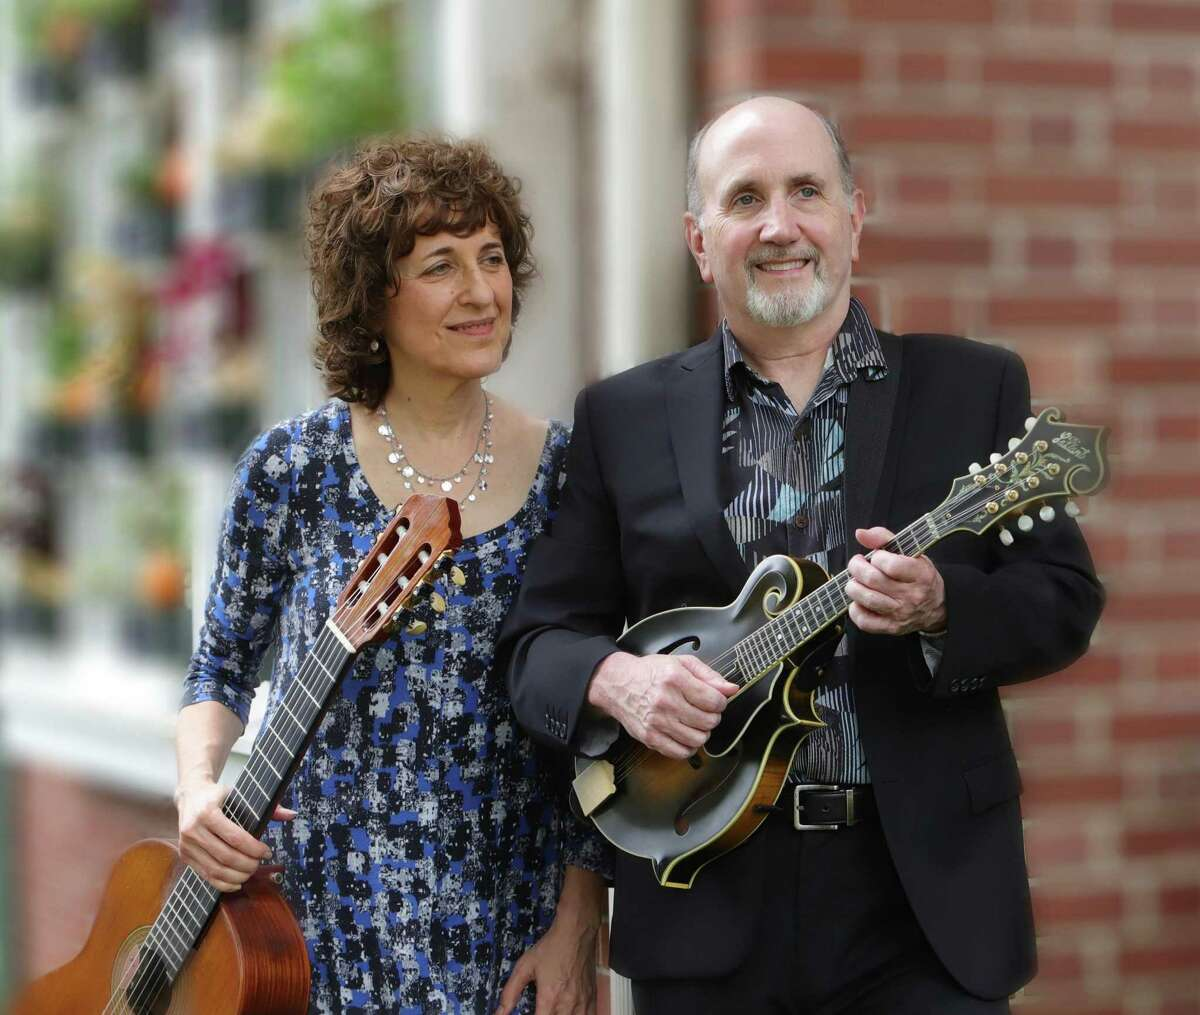 Judy Handler and Mark Levesque